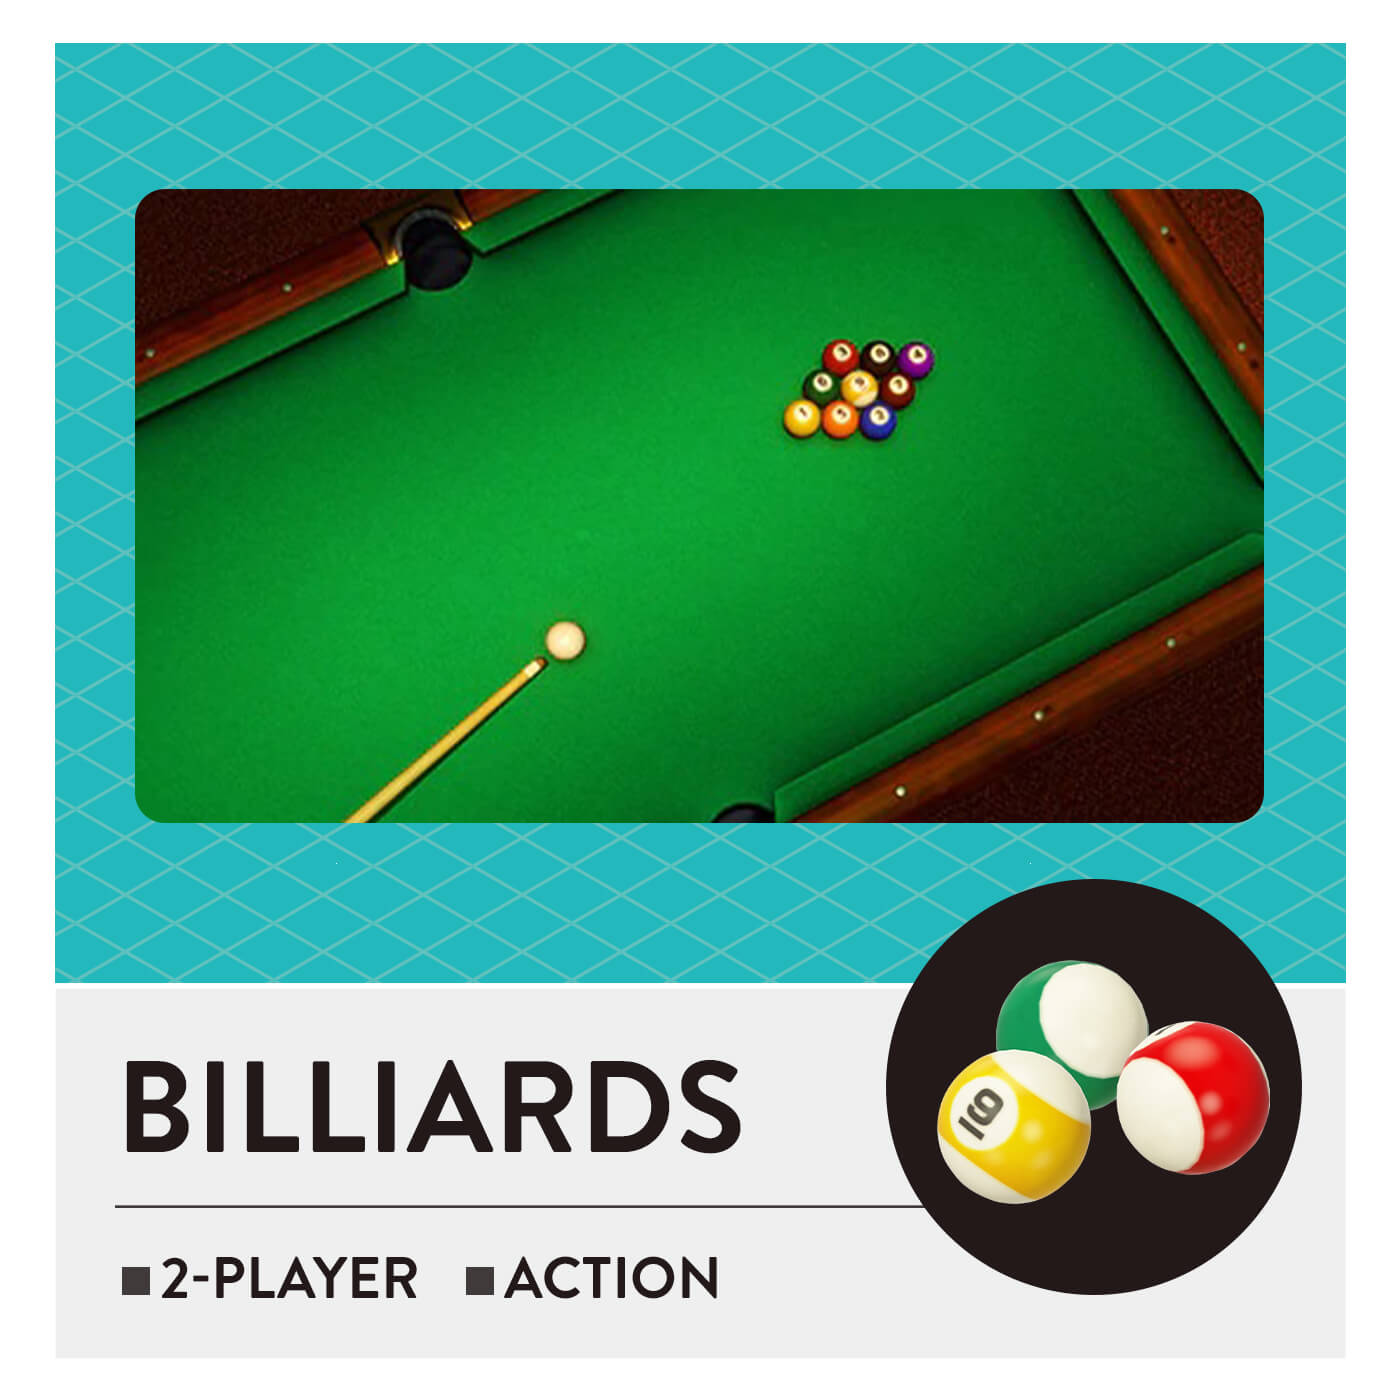 51 Worldwide Games - Billiards